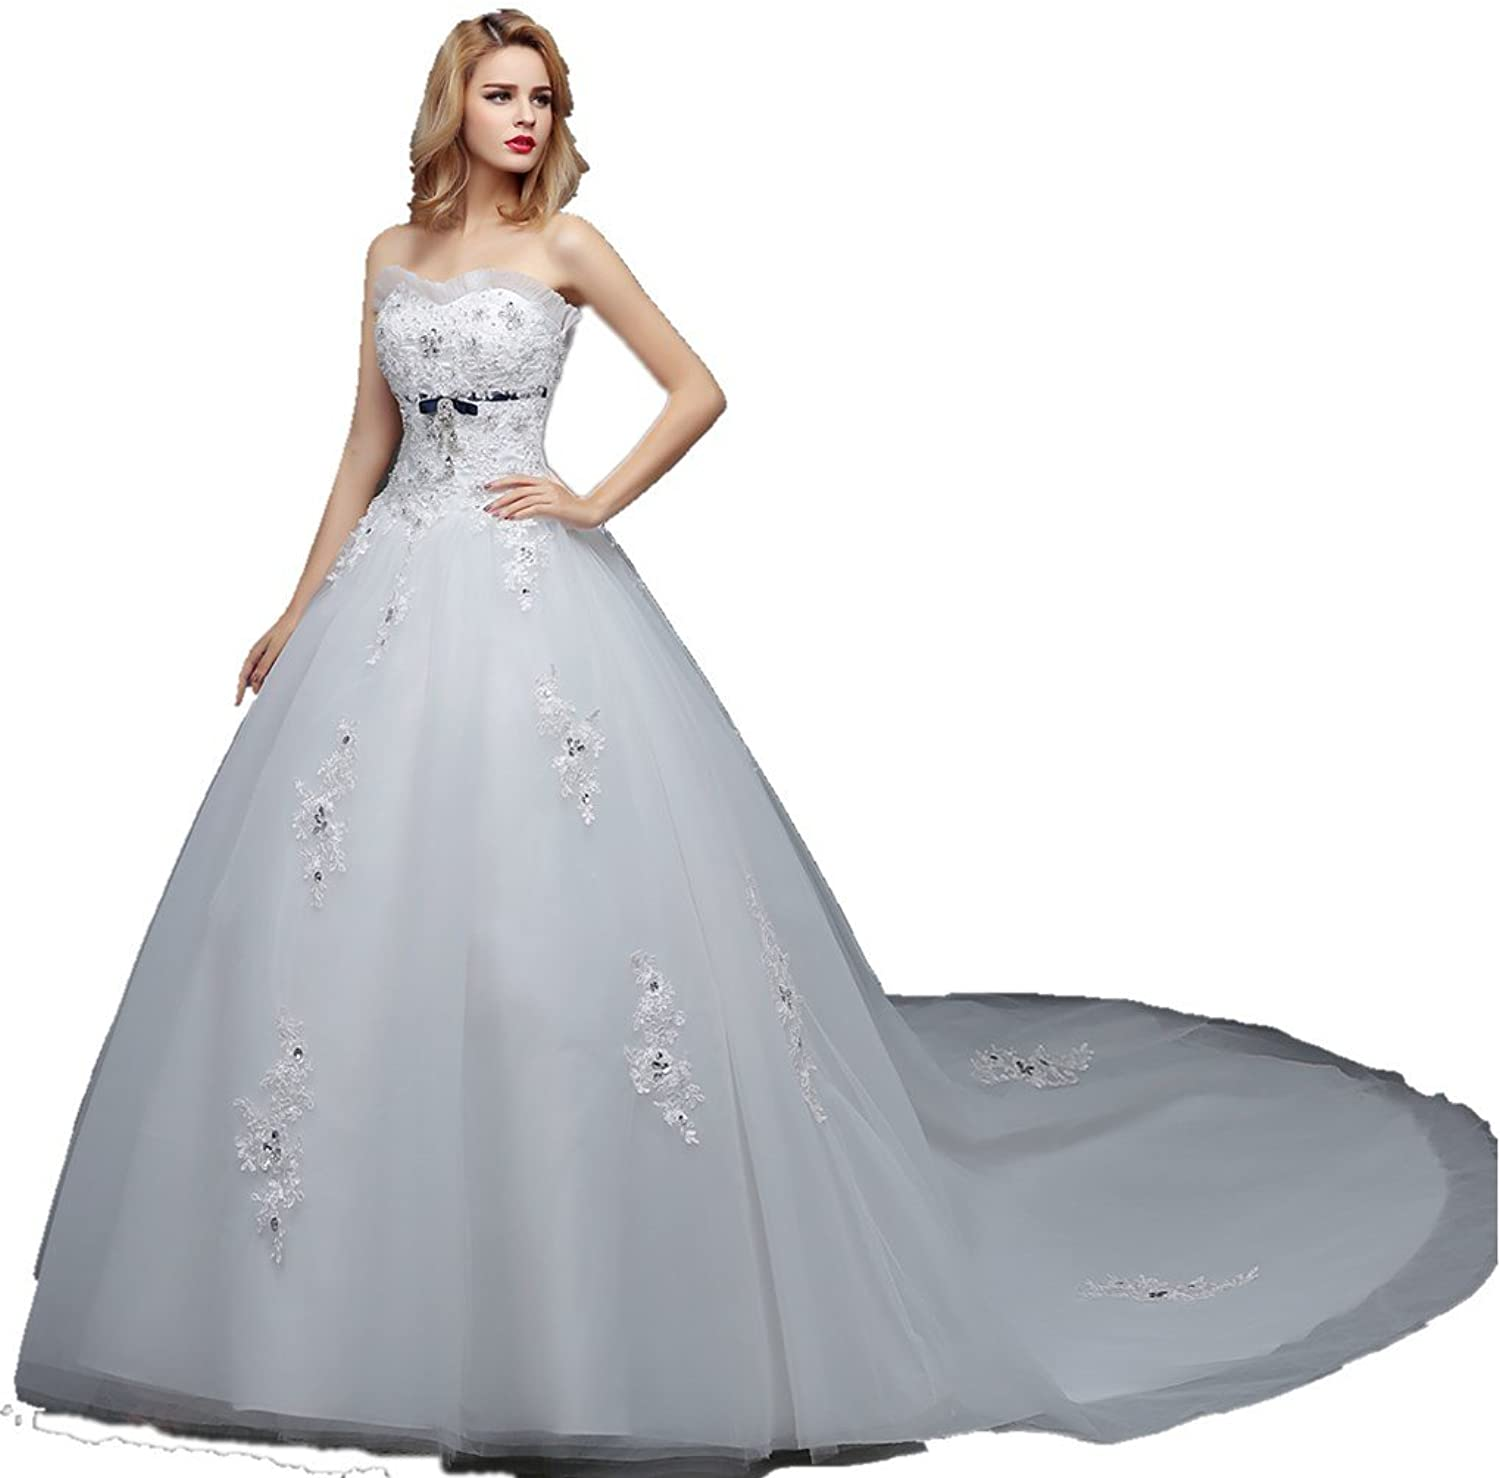 Shanghai Story Sweetheart Beaded Corset Strapless Classic Train Wedding Dress